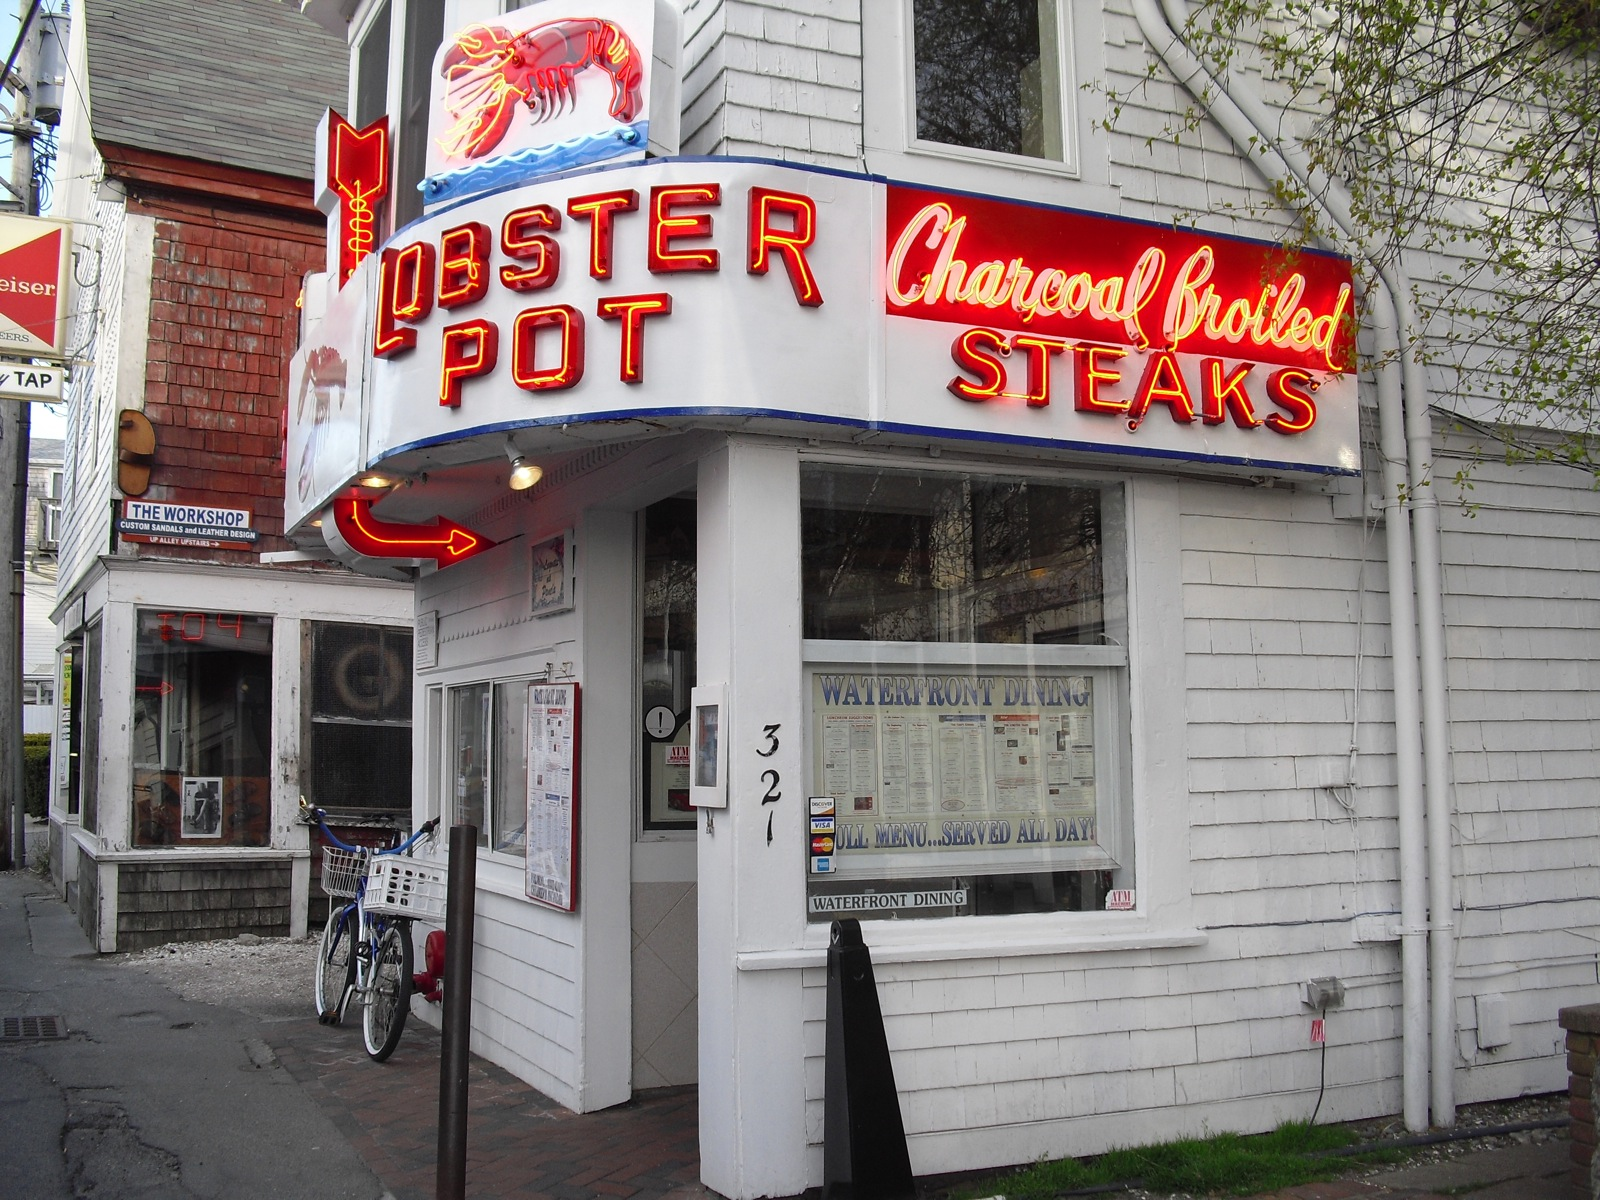 Exterior shot of restaurant with red neon signs of lobsters menu items